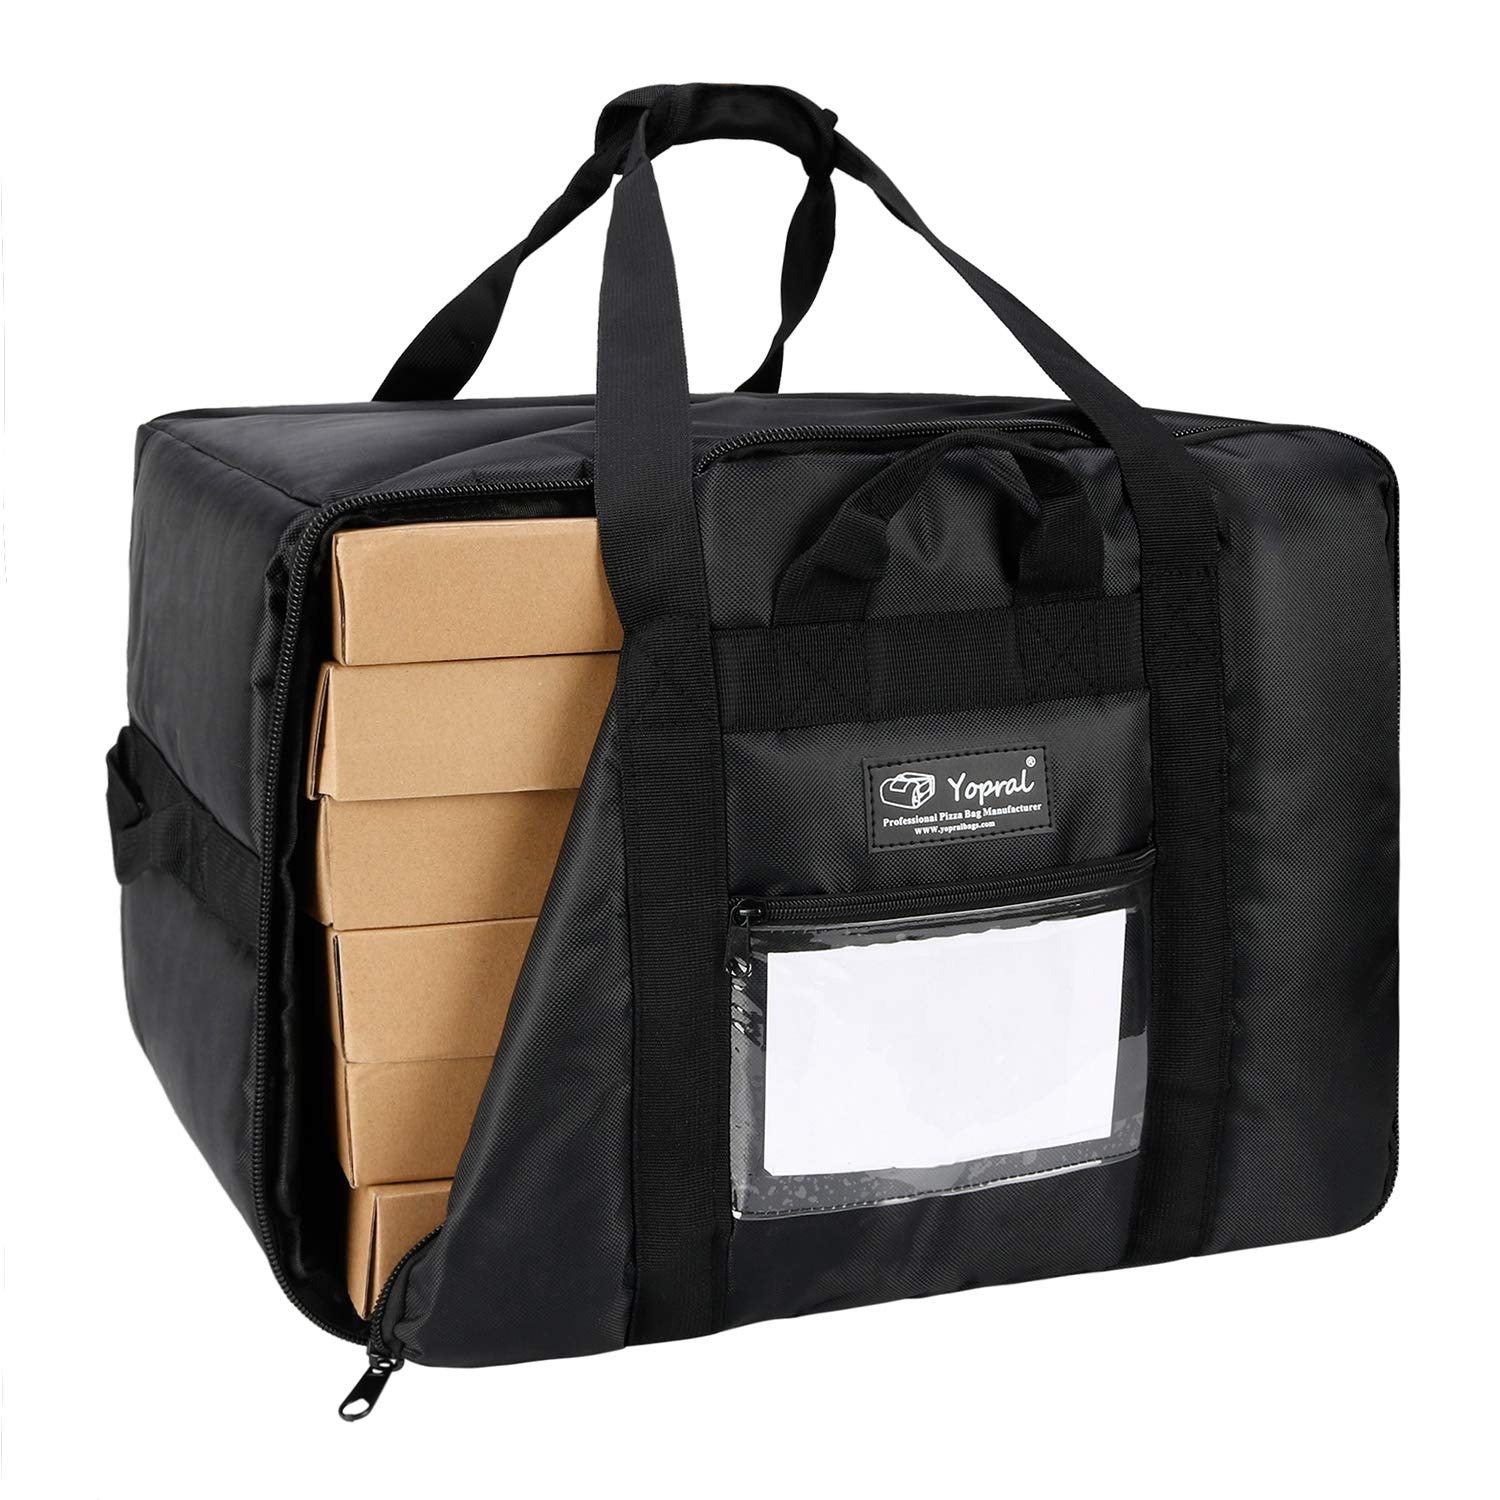 YOPRAL Insulated Pizza Delivery Bag Large Zipper Closure Commercial Food Warmer Bag Carry Hot/Cold for Uber Eats Doordash Restaurant Catering- Holds Six 18 Inch Pizza Boxes